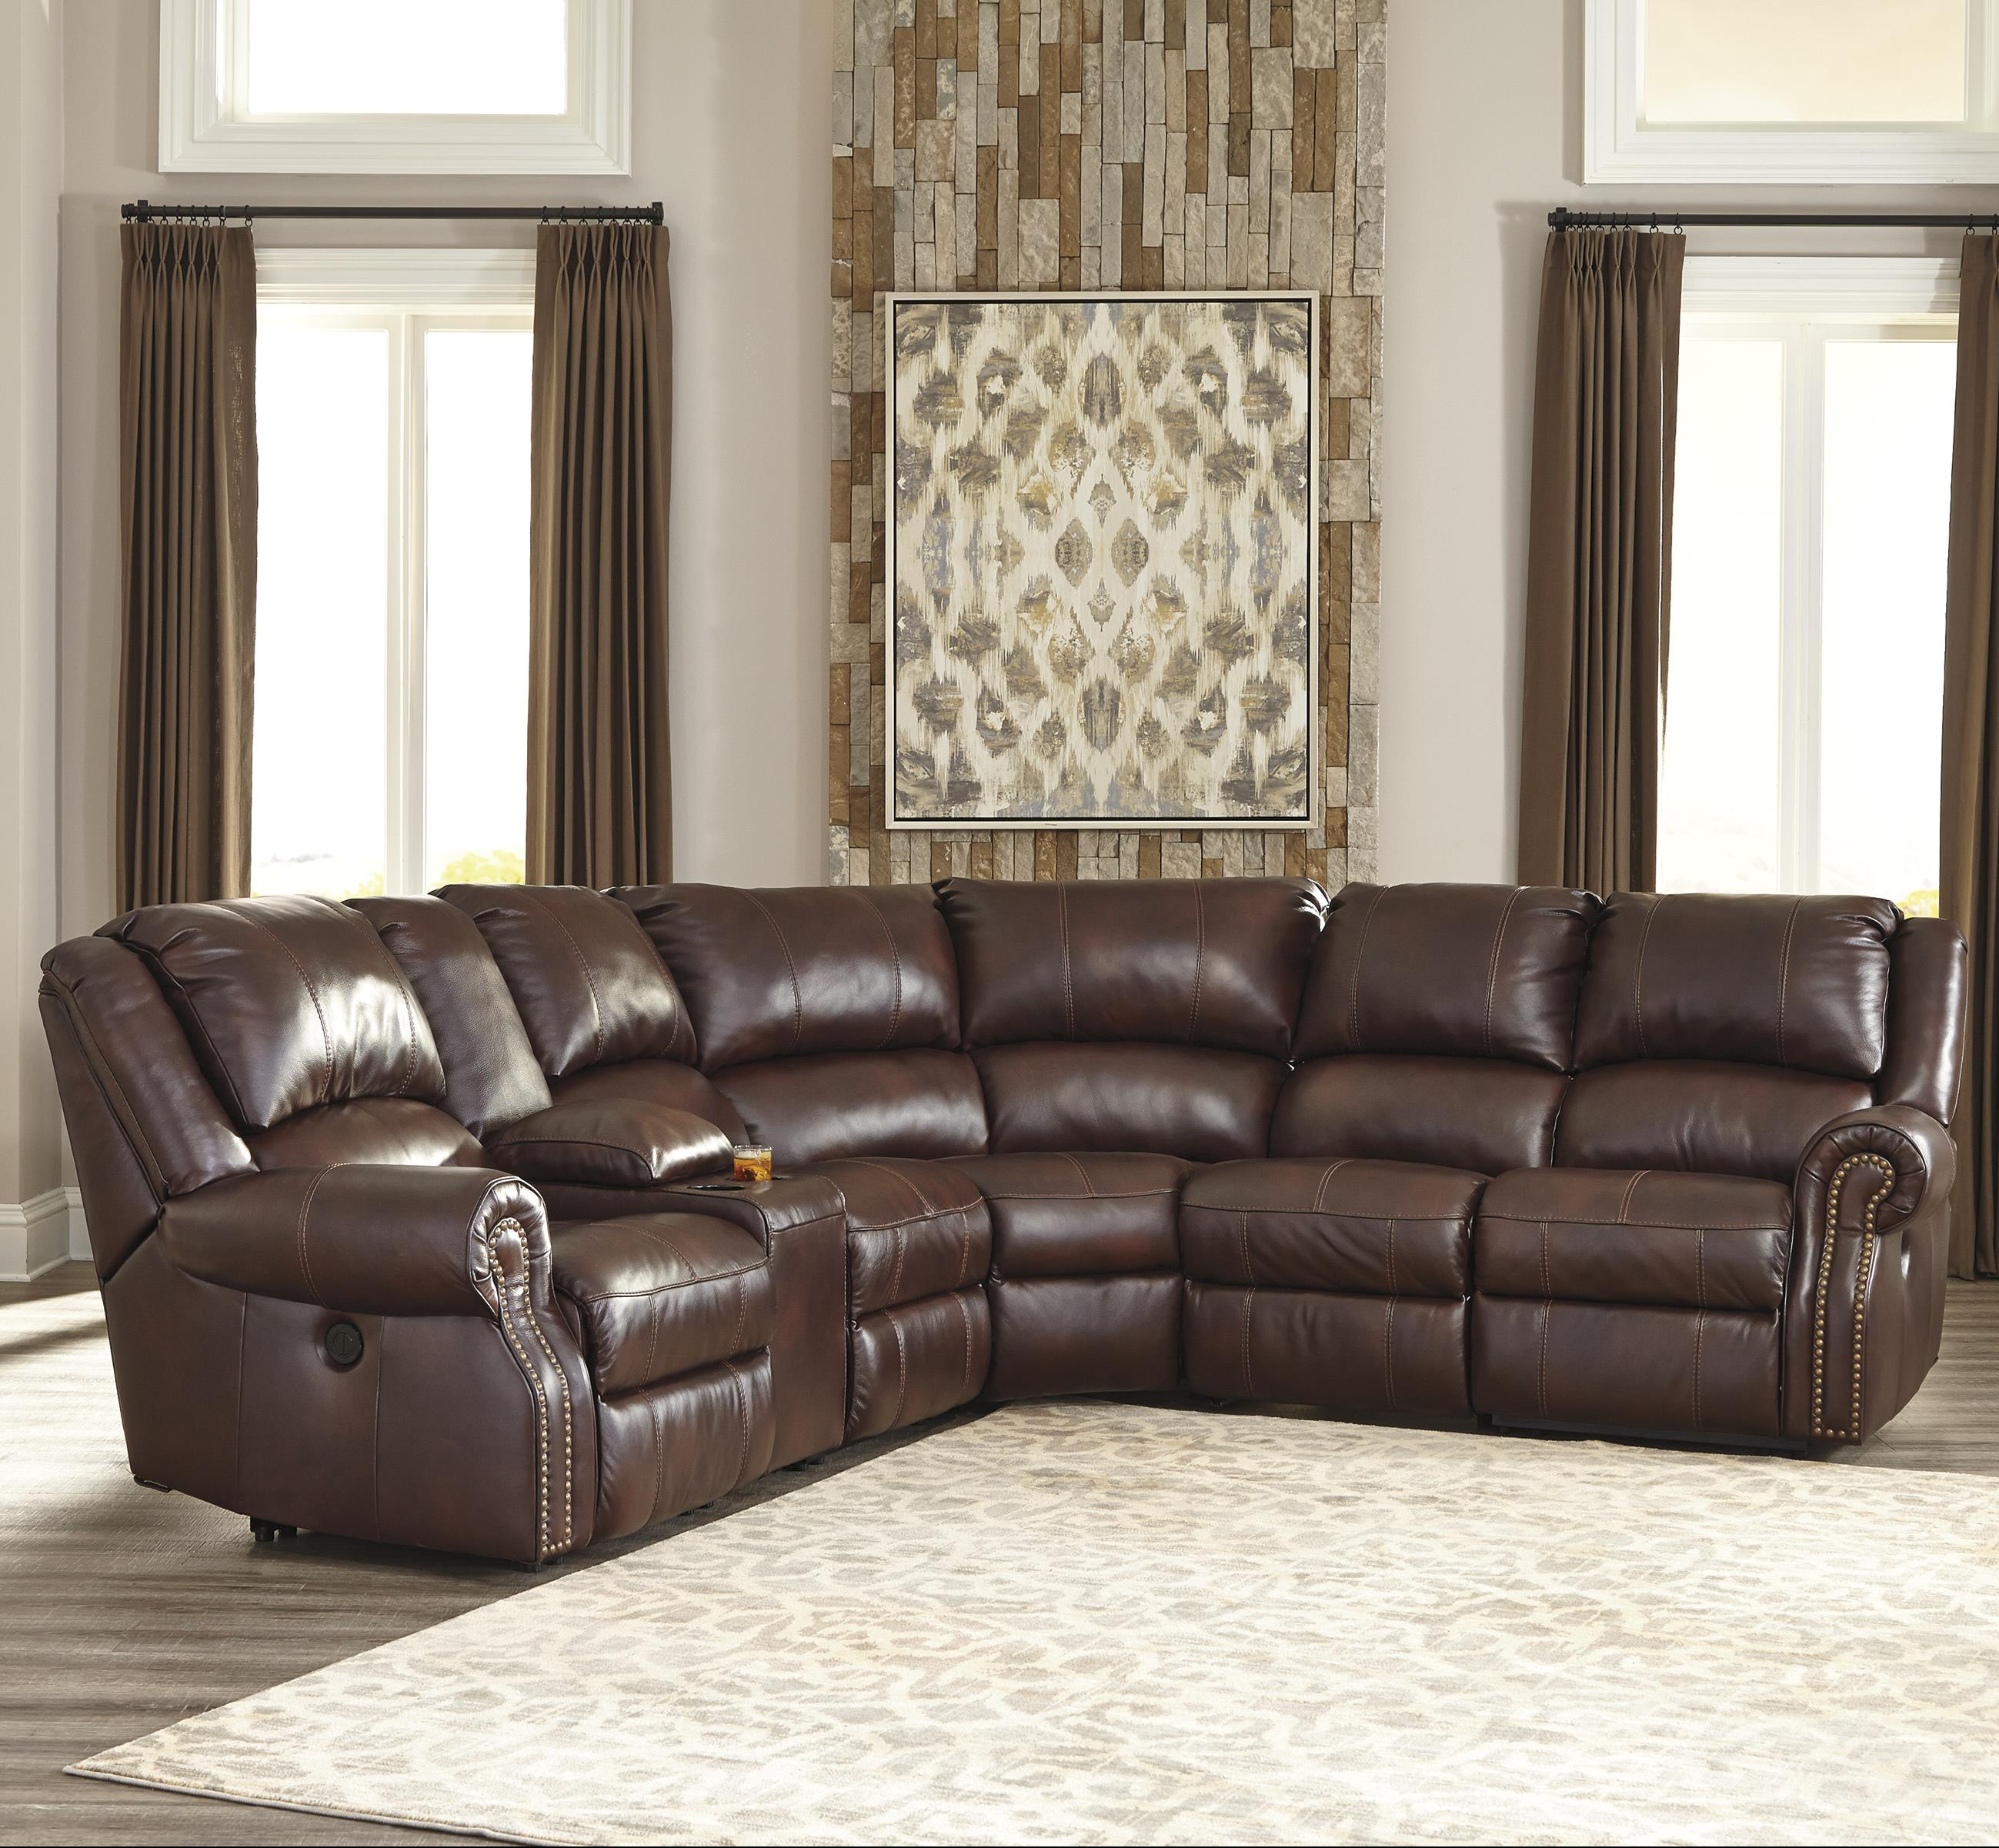 6-Piece Power Reclining Sectional with Console u0026 2 Armless Recliners & 6-Piece Power Reclining Sectional with Console u0026 2 Armless ... islam-shia.org